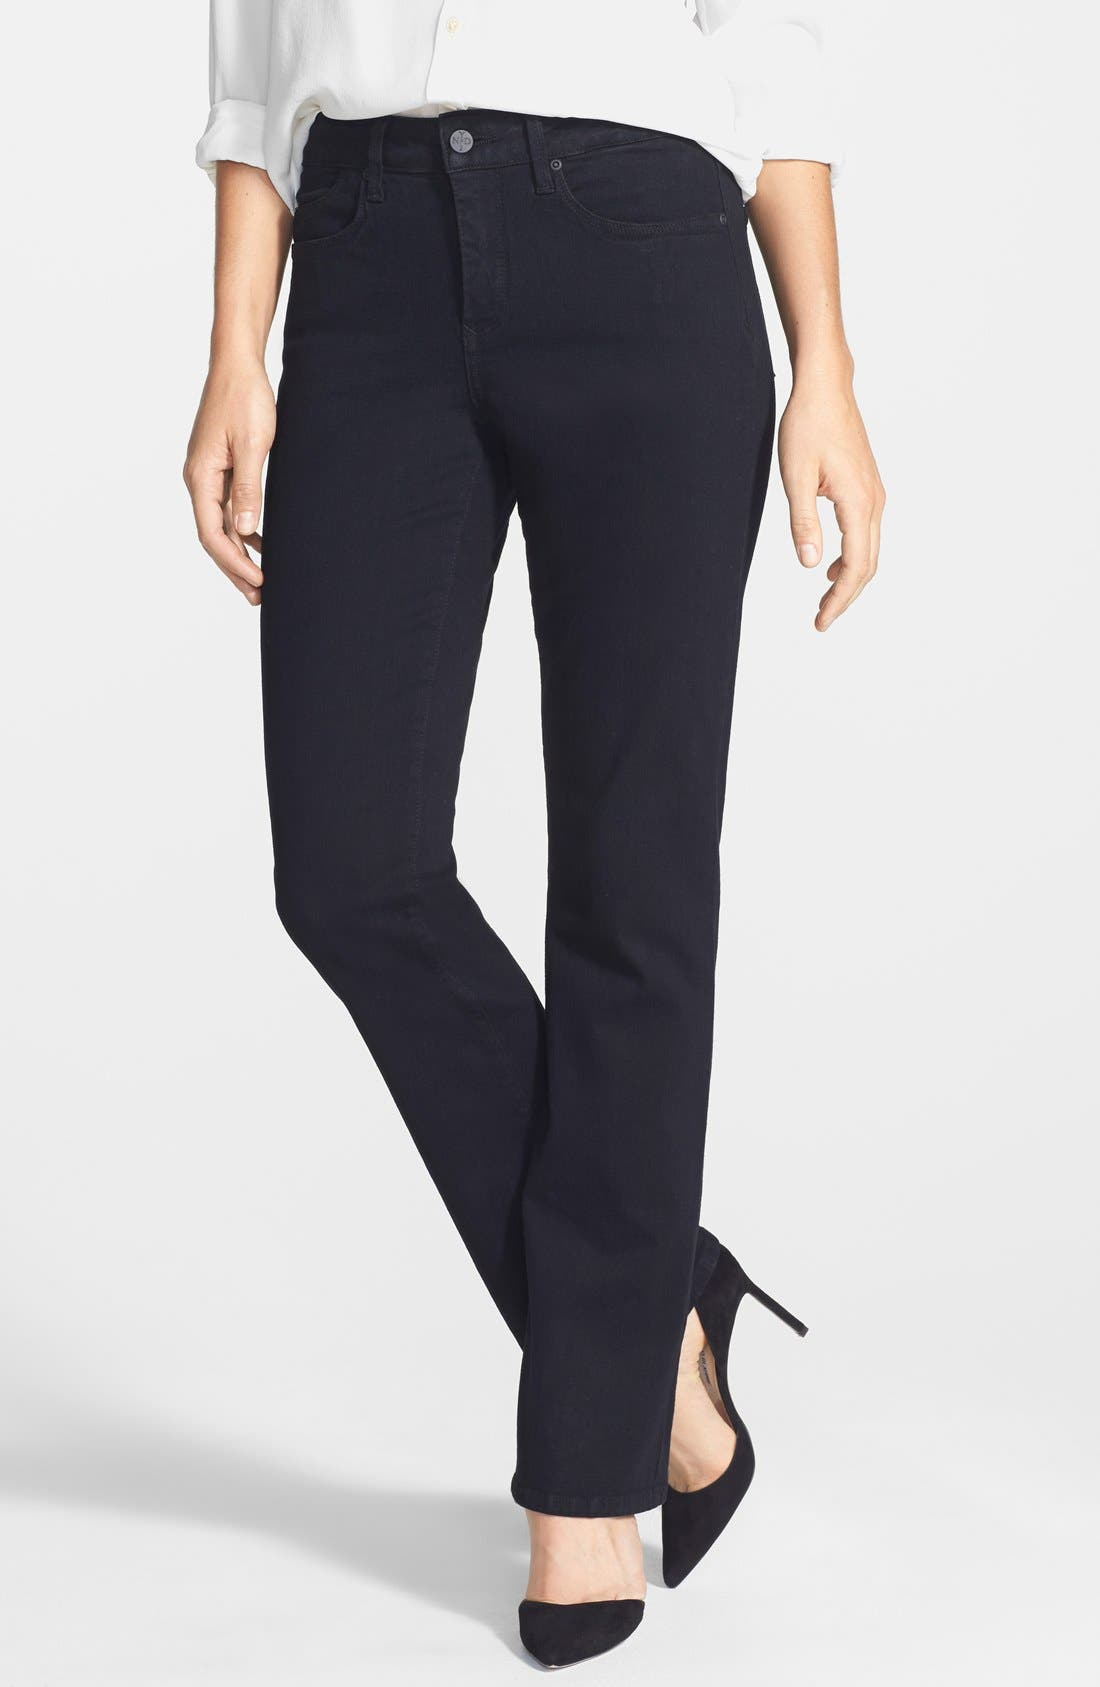 NYDJ 'Billie' Stretch Mini Bootcut Jeans